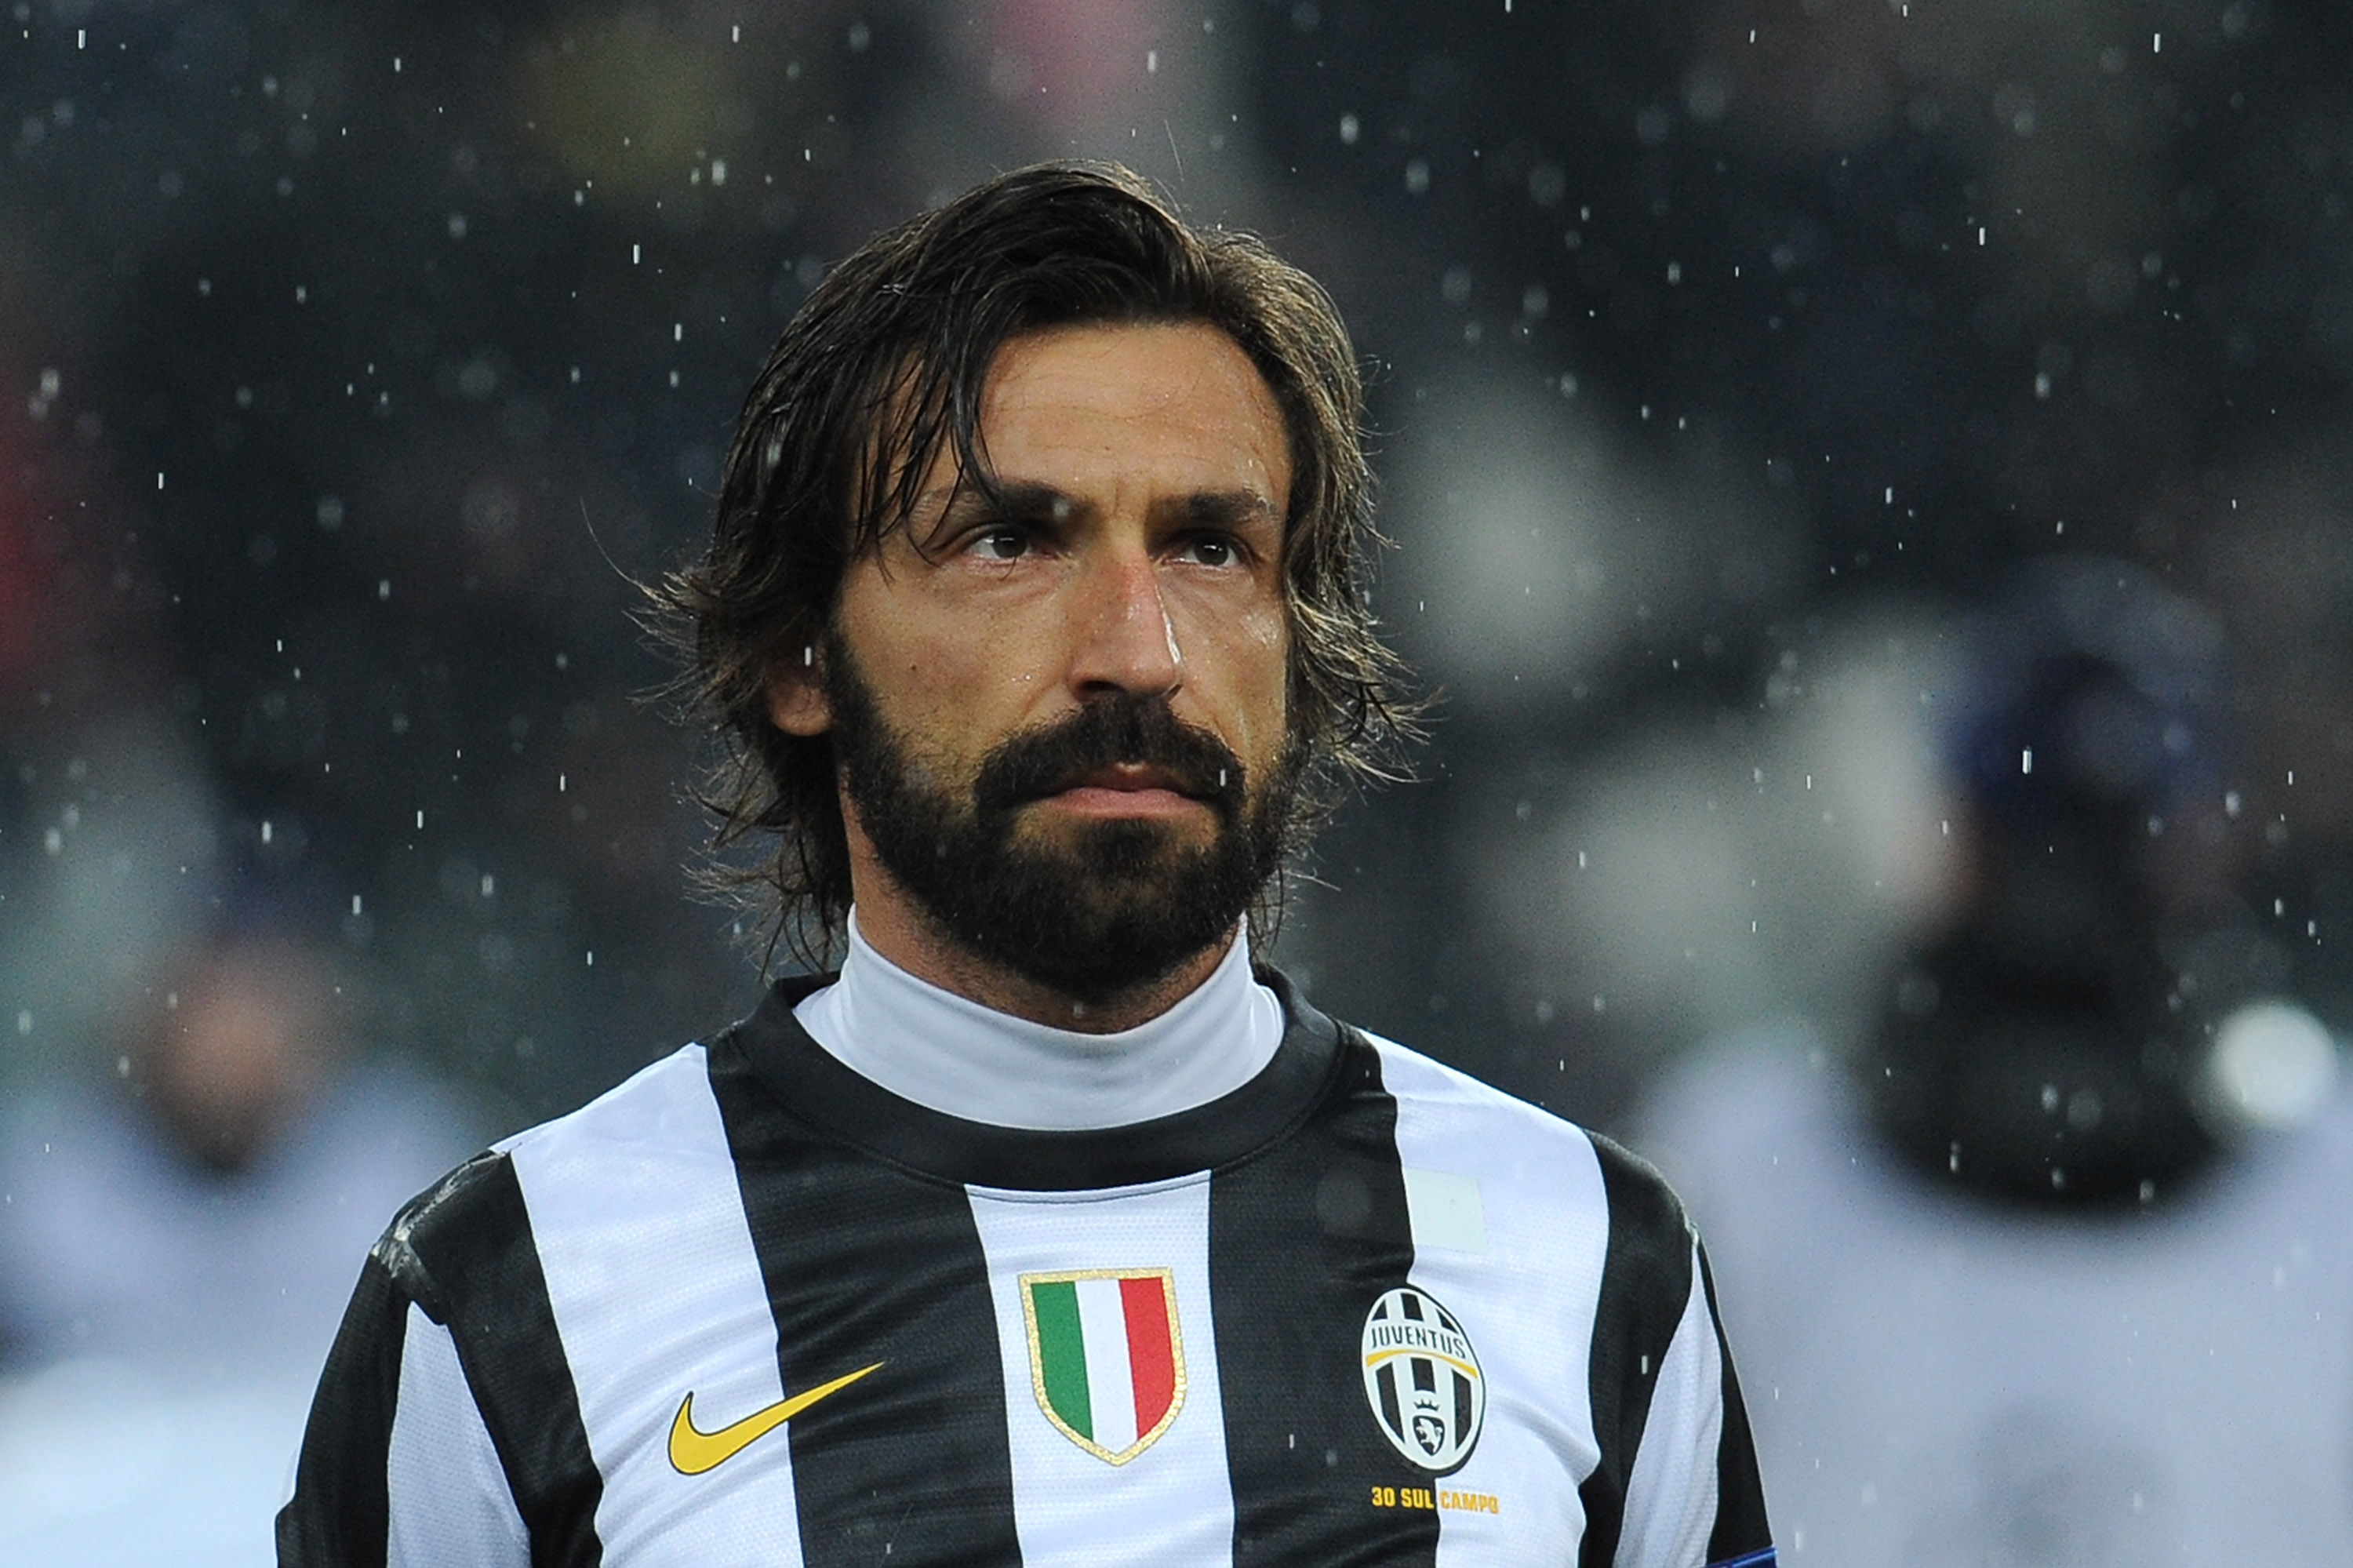 Robben Balding Pirlo S Beard And Rooney Hairline How Time Has Caught Up With These 11 Players Nsnews 24 7